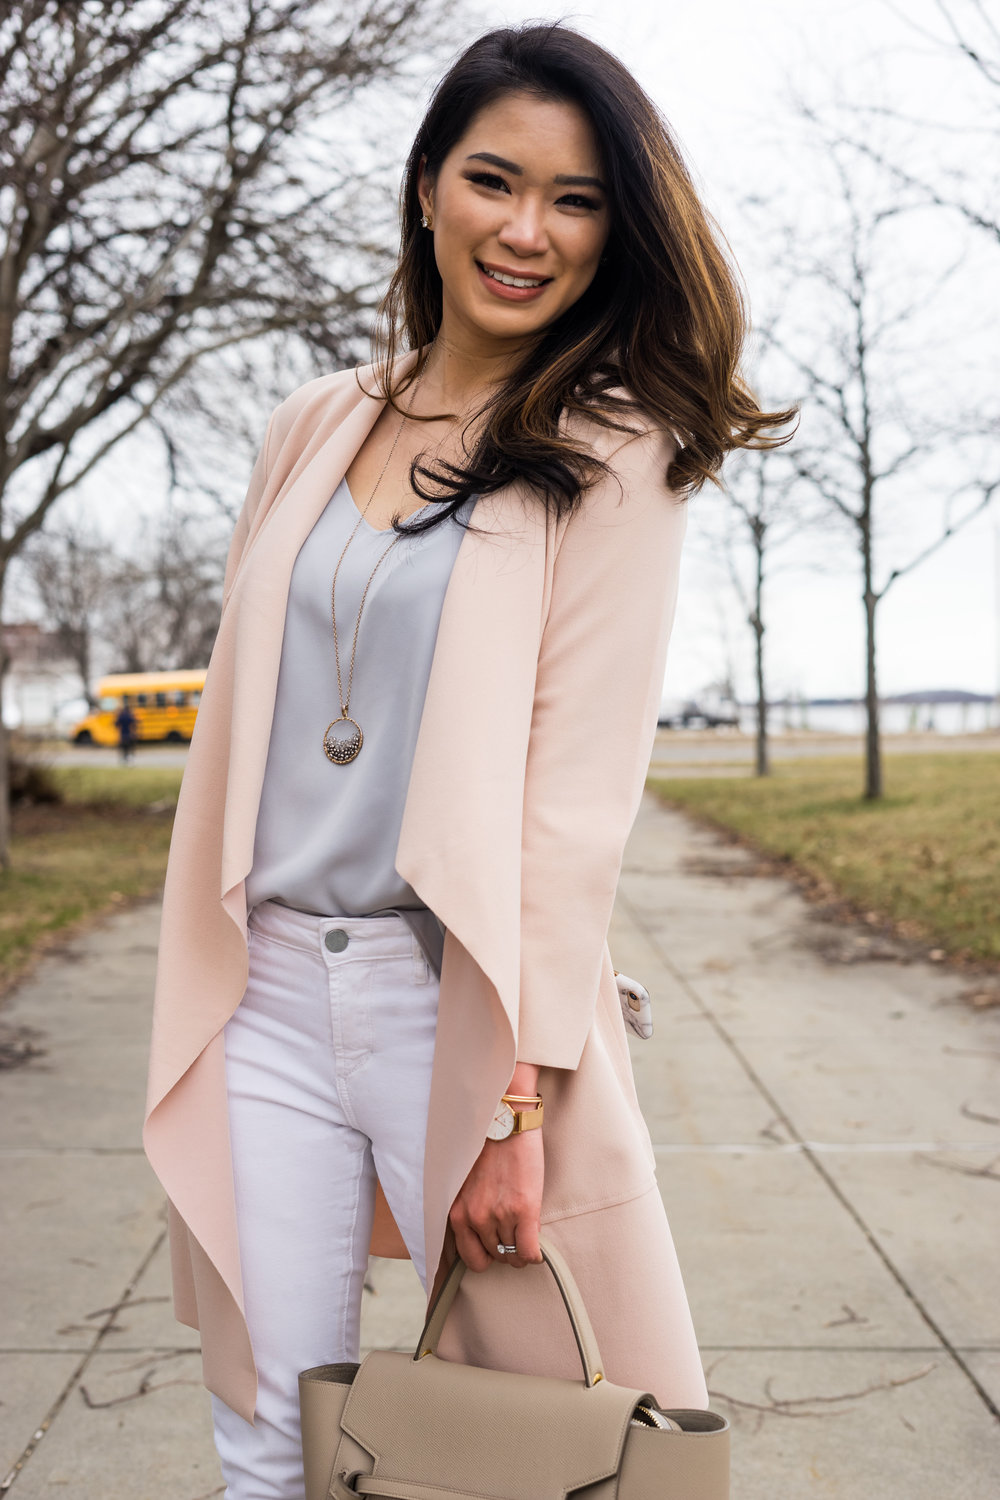 SHEIN Pink Waterfall Wrap Coat for the Spring - TheNinesBlog.com : A Boston Blog